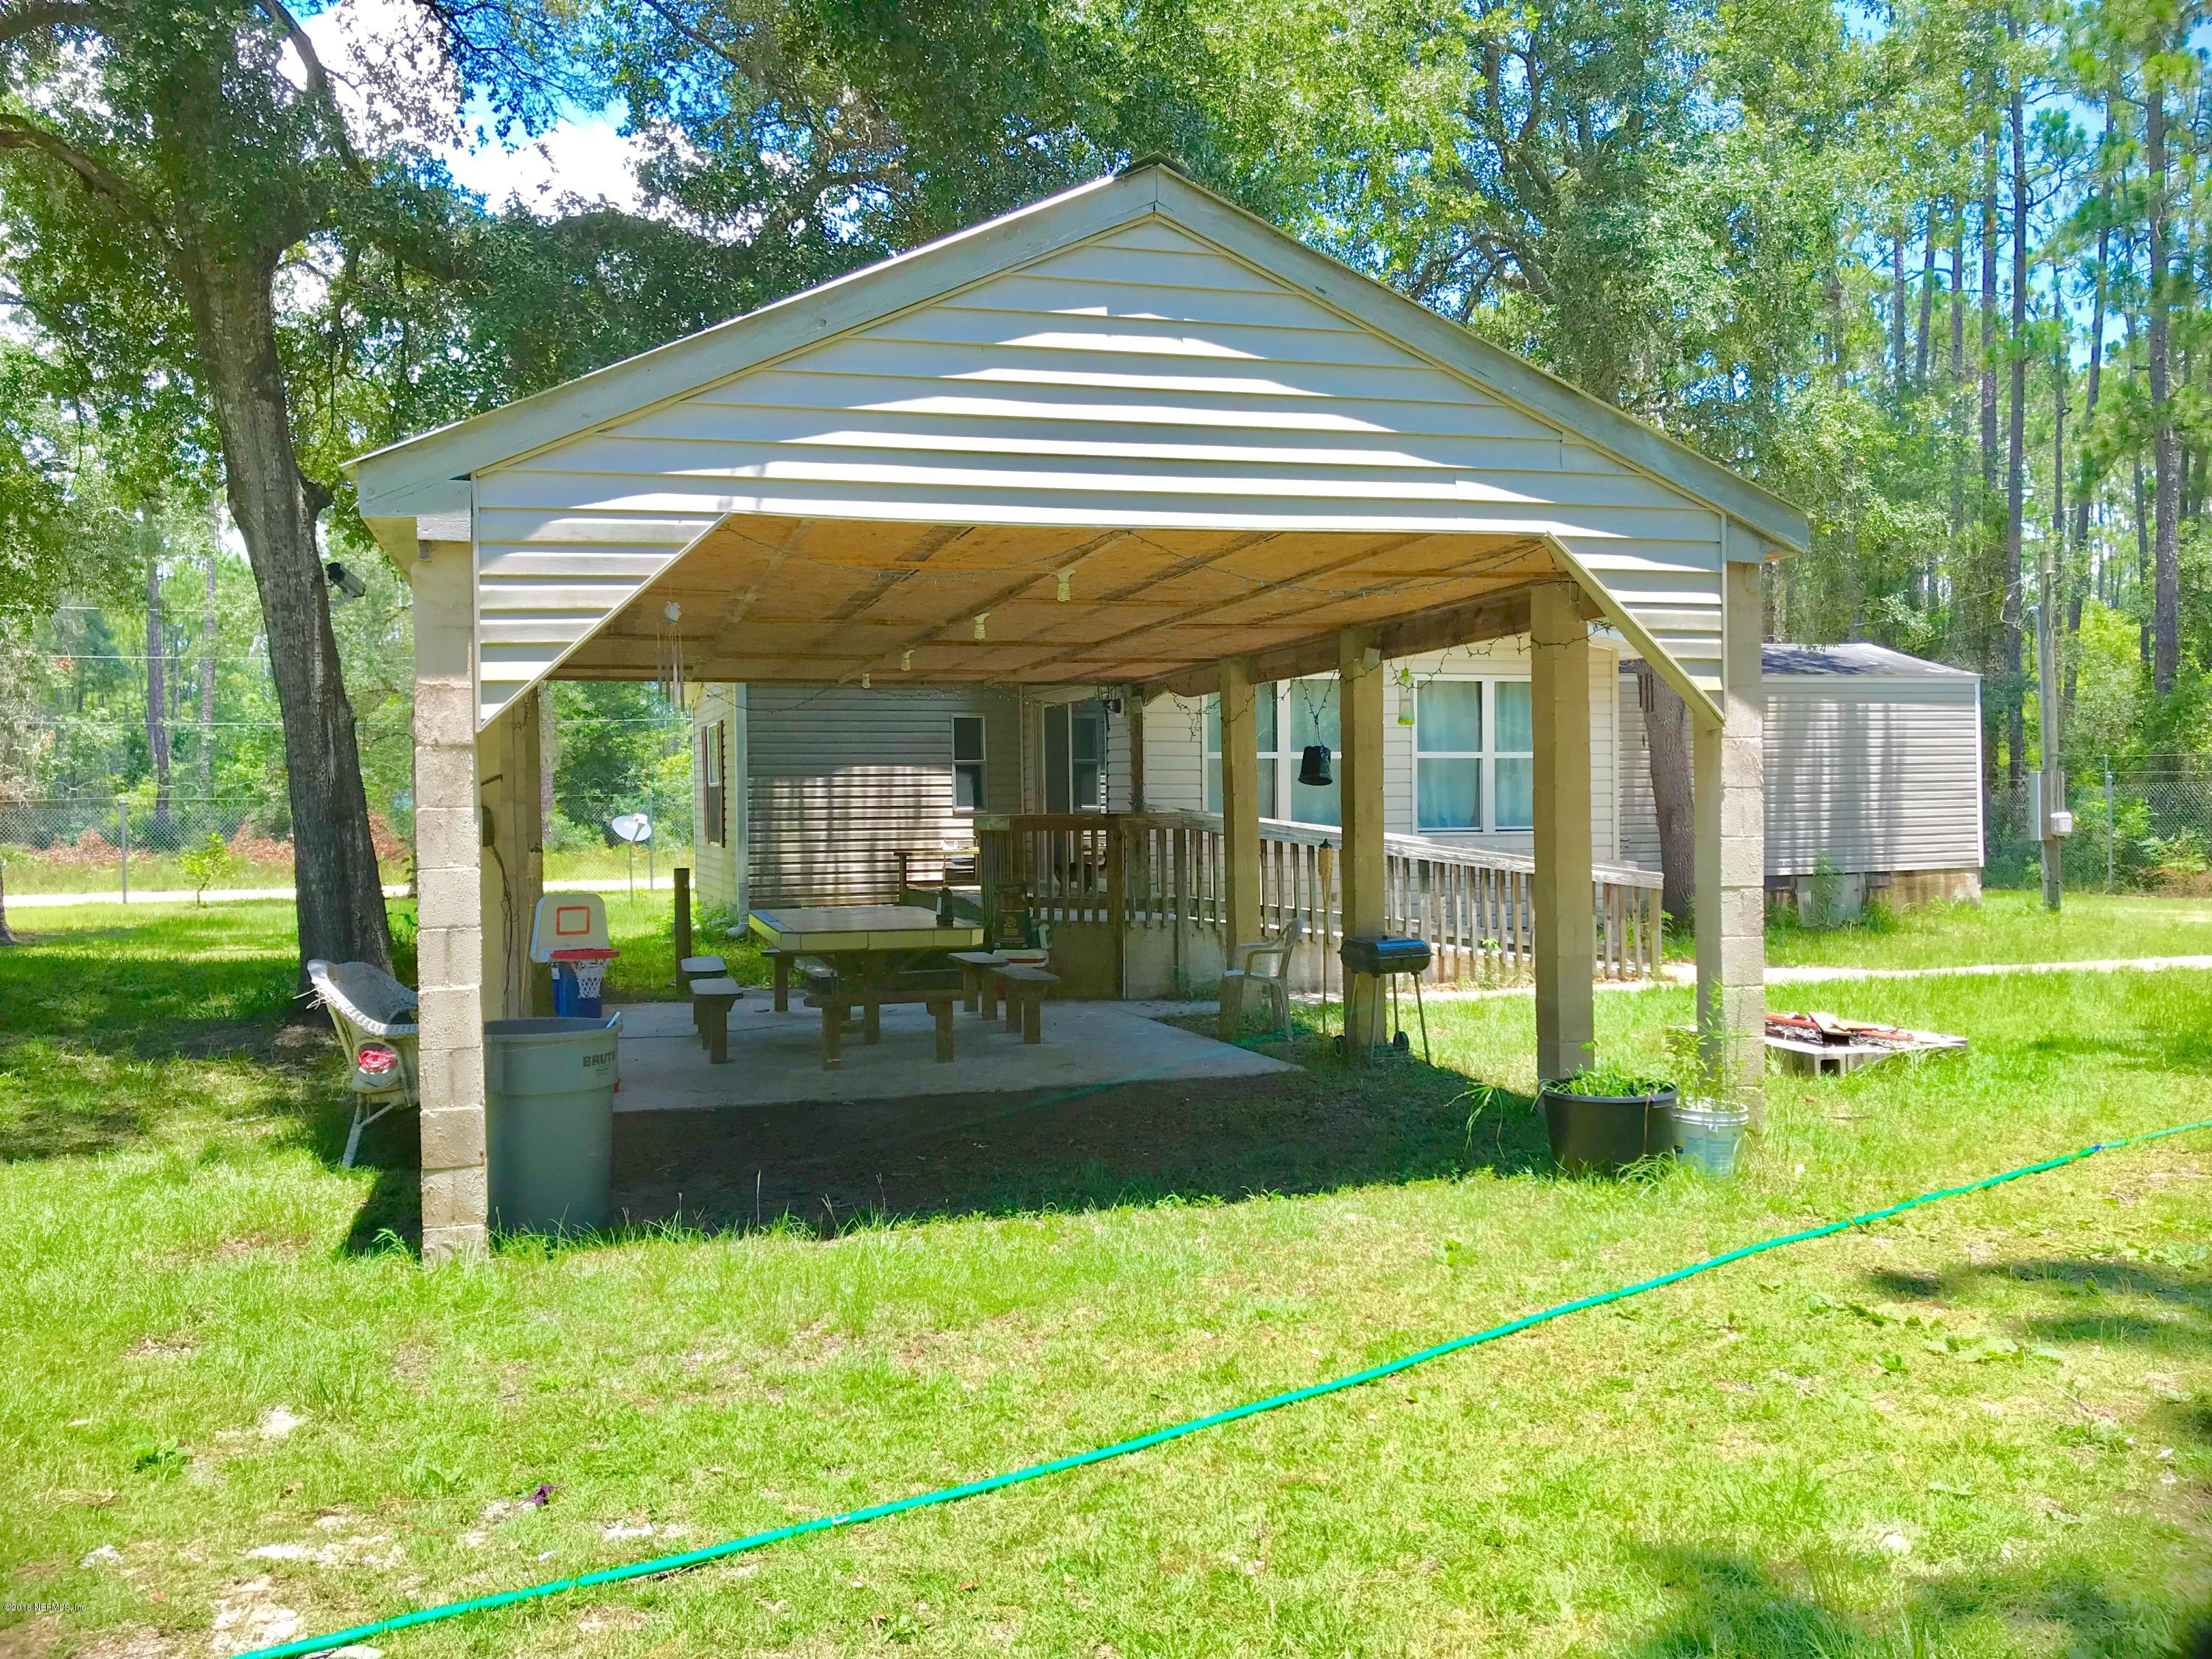 211 DOTTIE, INTERLACHEN, FLORIDA 32148, 2 Bedrooms Bedrooms, ,1 BathroomBathrooms,Residential - mobile home,For sale,DOTTIE,946891